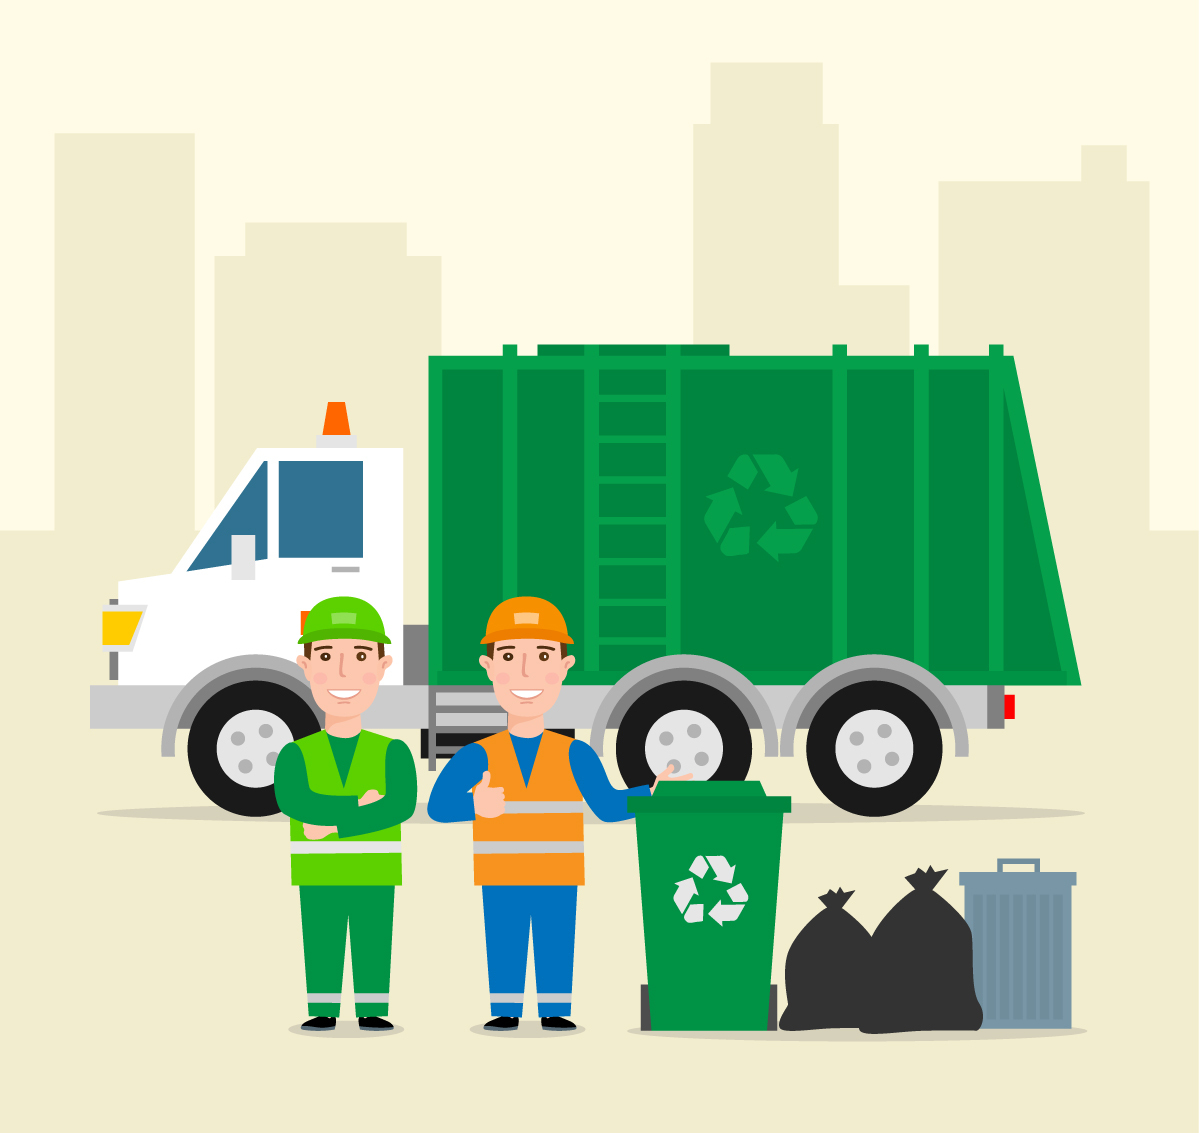 Cartoon Image of a bin crew with lorry and various bins